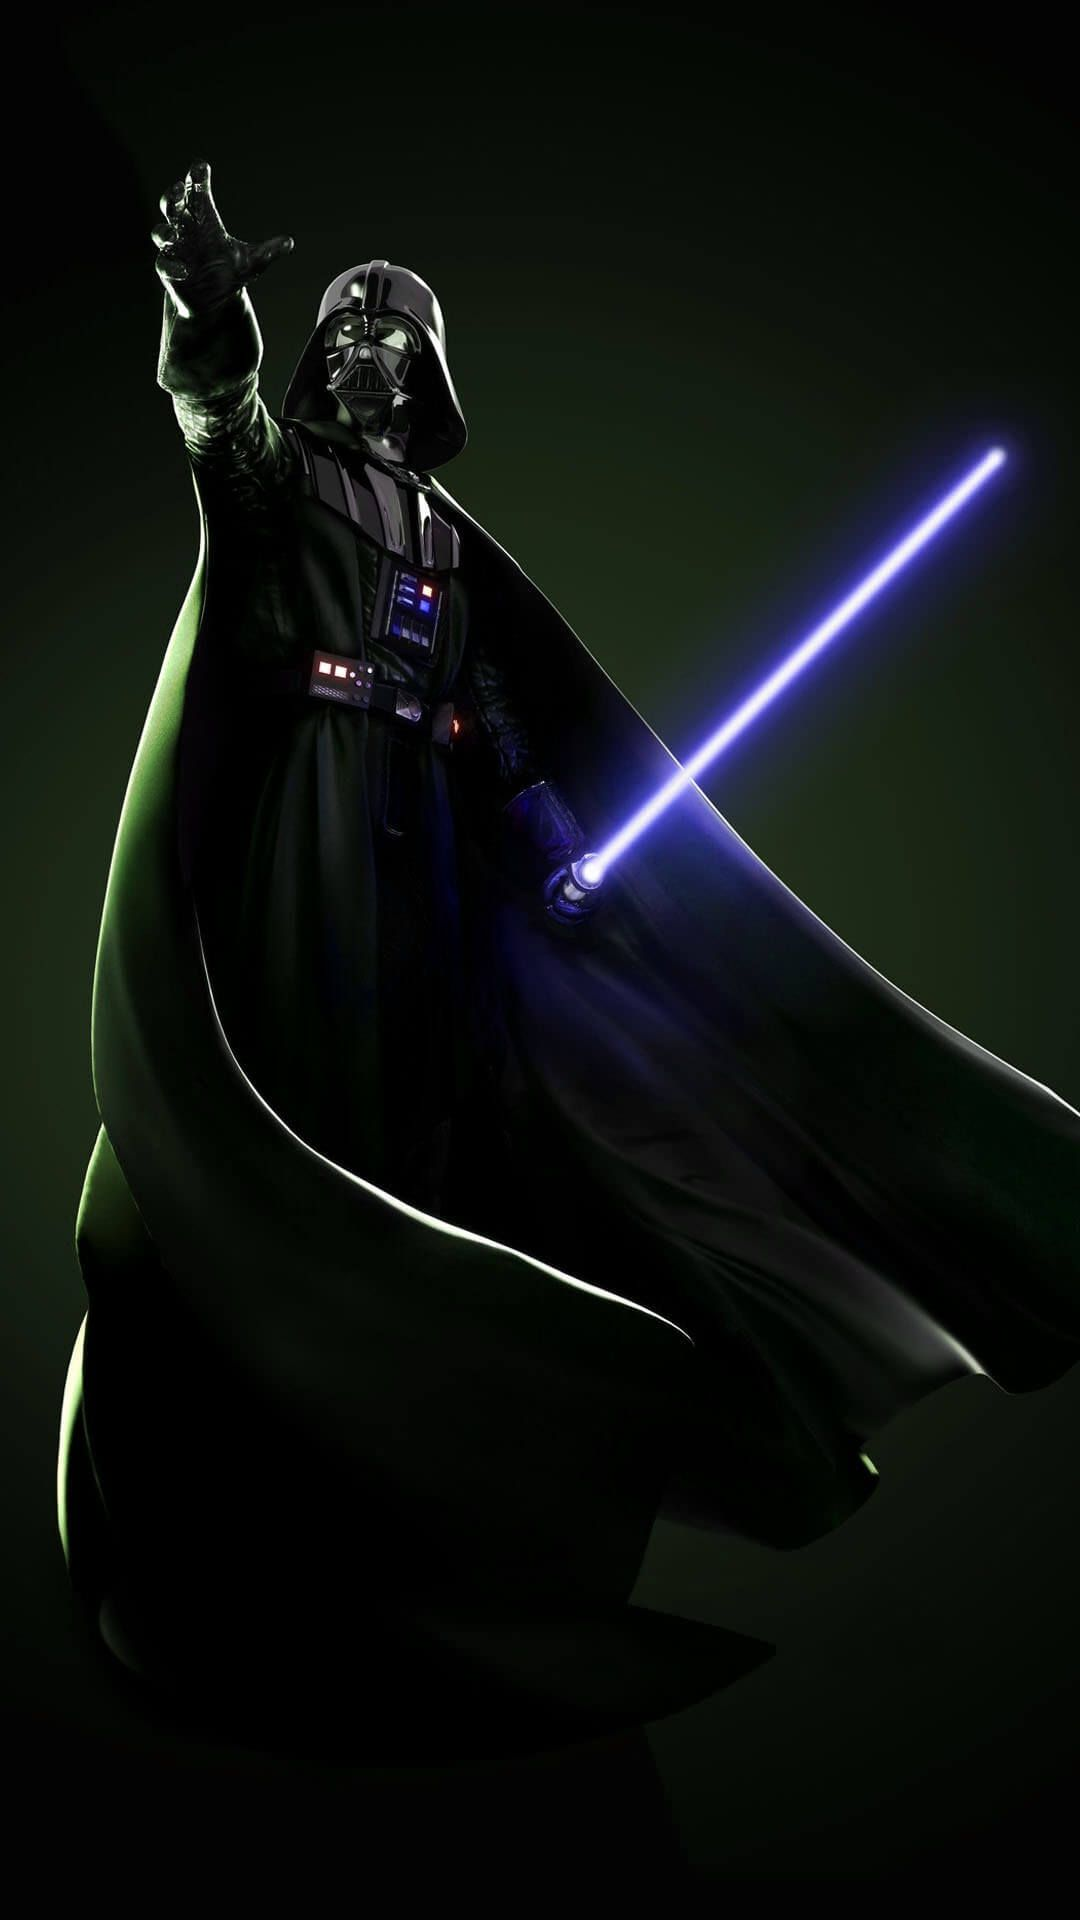 Iphone 7 Plus Star Wars Wallpaper Posted By Ryan Sellers